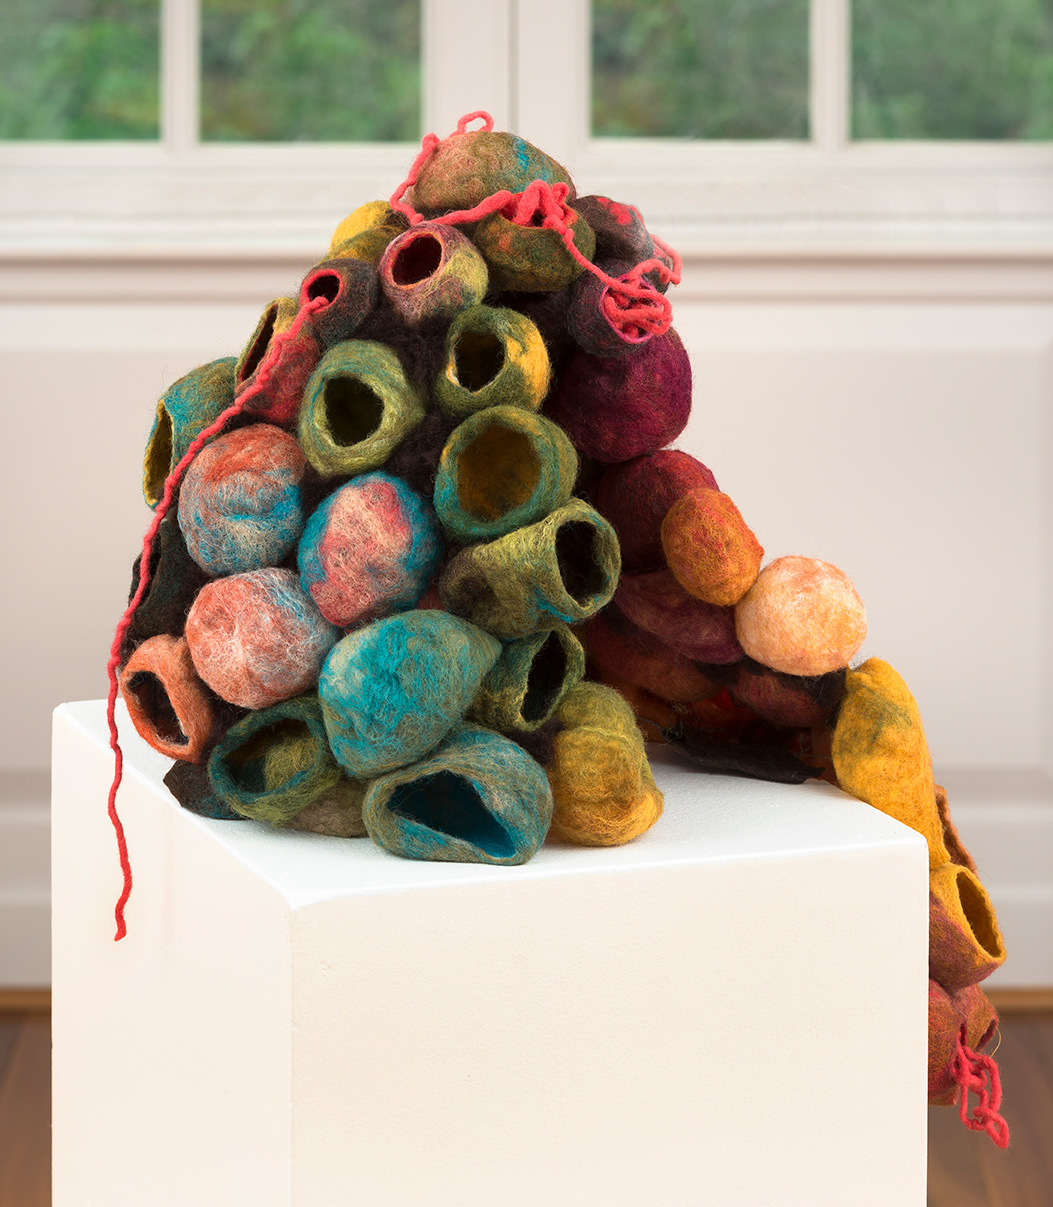 Nesting Instincts sculpture by emerging artist Emily Hoxworth